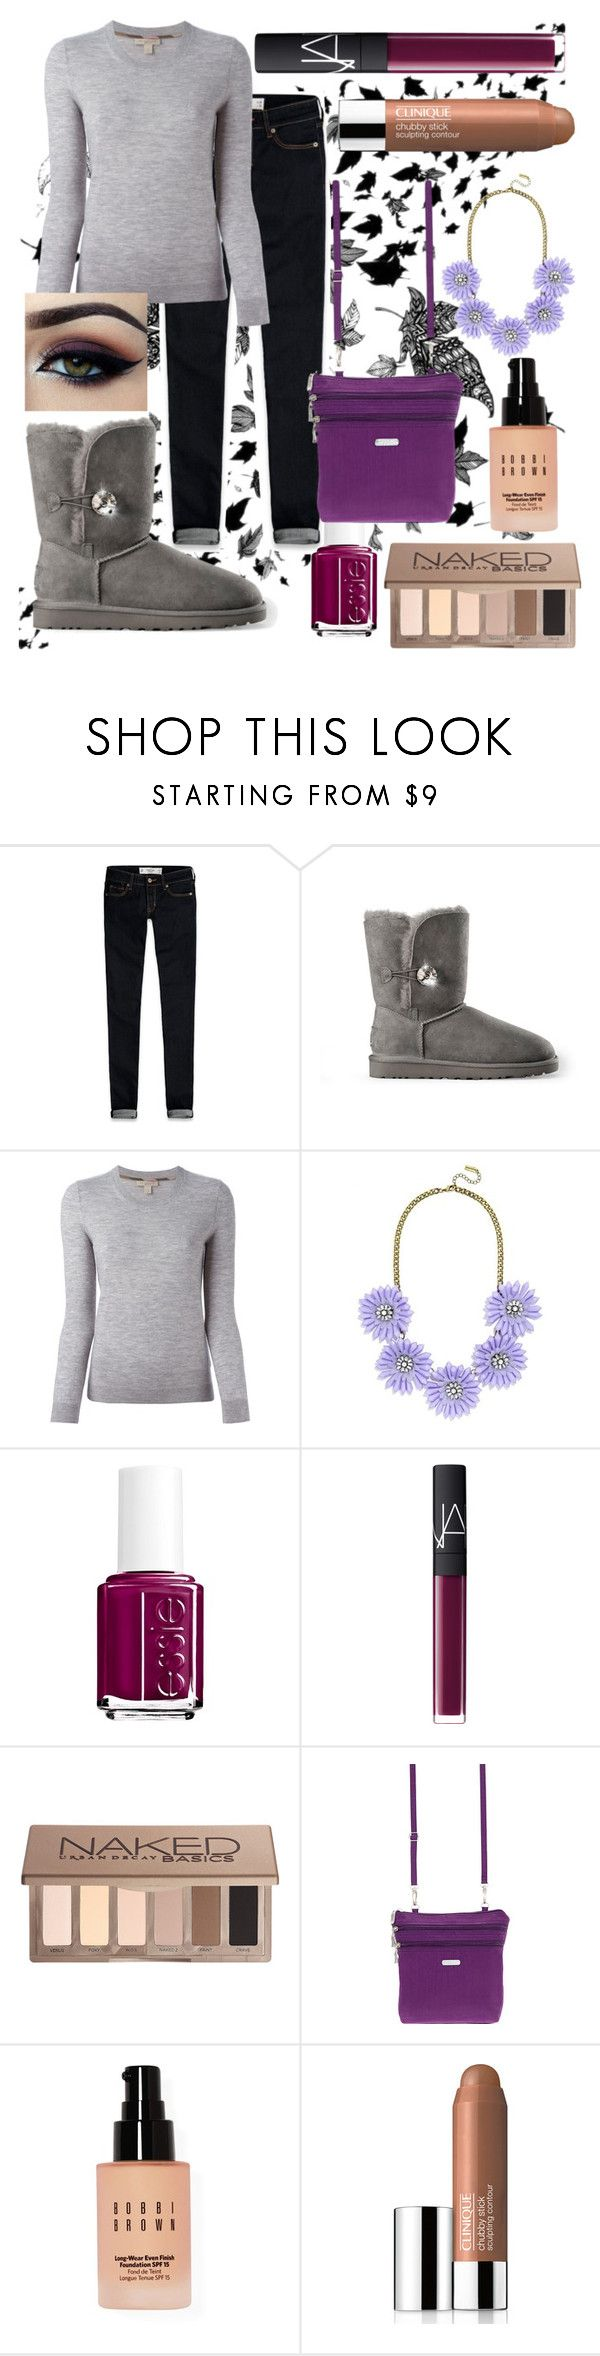 """""""Purple Hues"""" by carolynevers ❤ liked on Polyvore featuring Abercrombie & Fitch, UGG Australia, Burberry, BaubleBar, Ardell, Essie, NARS Cosmetics, Urban Decay, Baggallini and Bobbi Brown Cosmetics"""